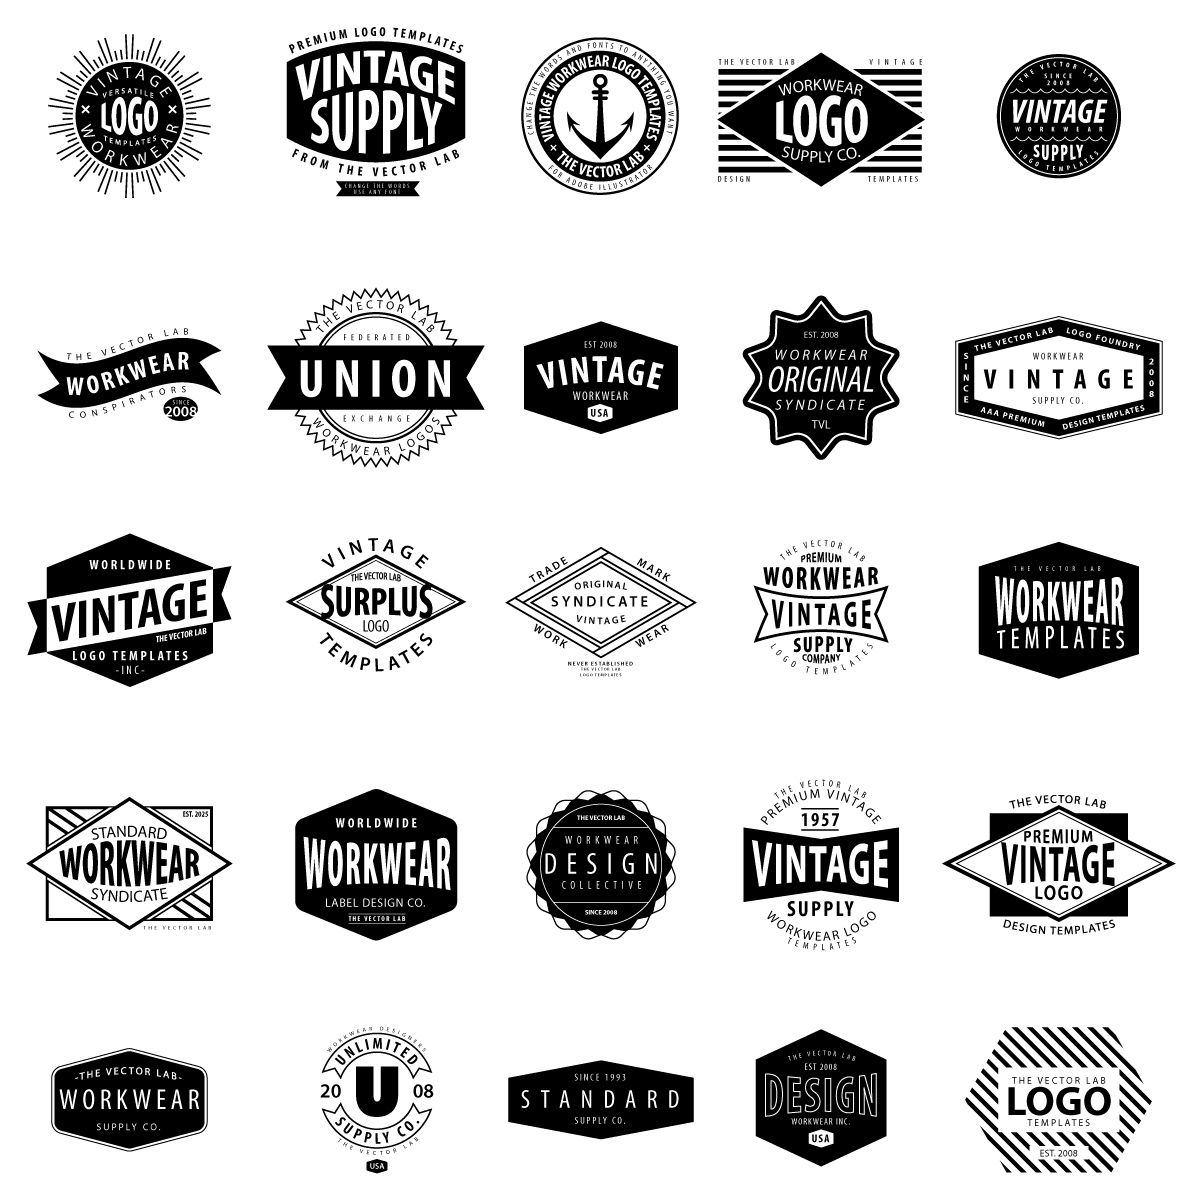 Vintage Logo Templates for Adobe Illustrator